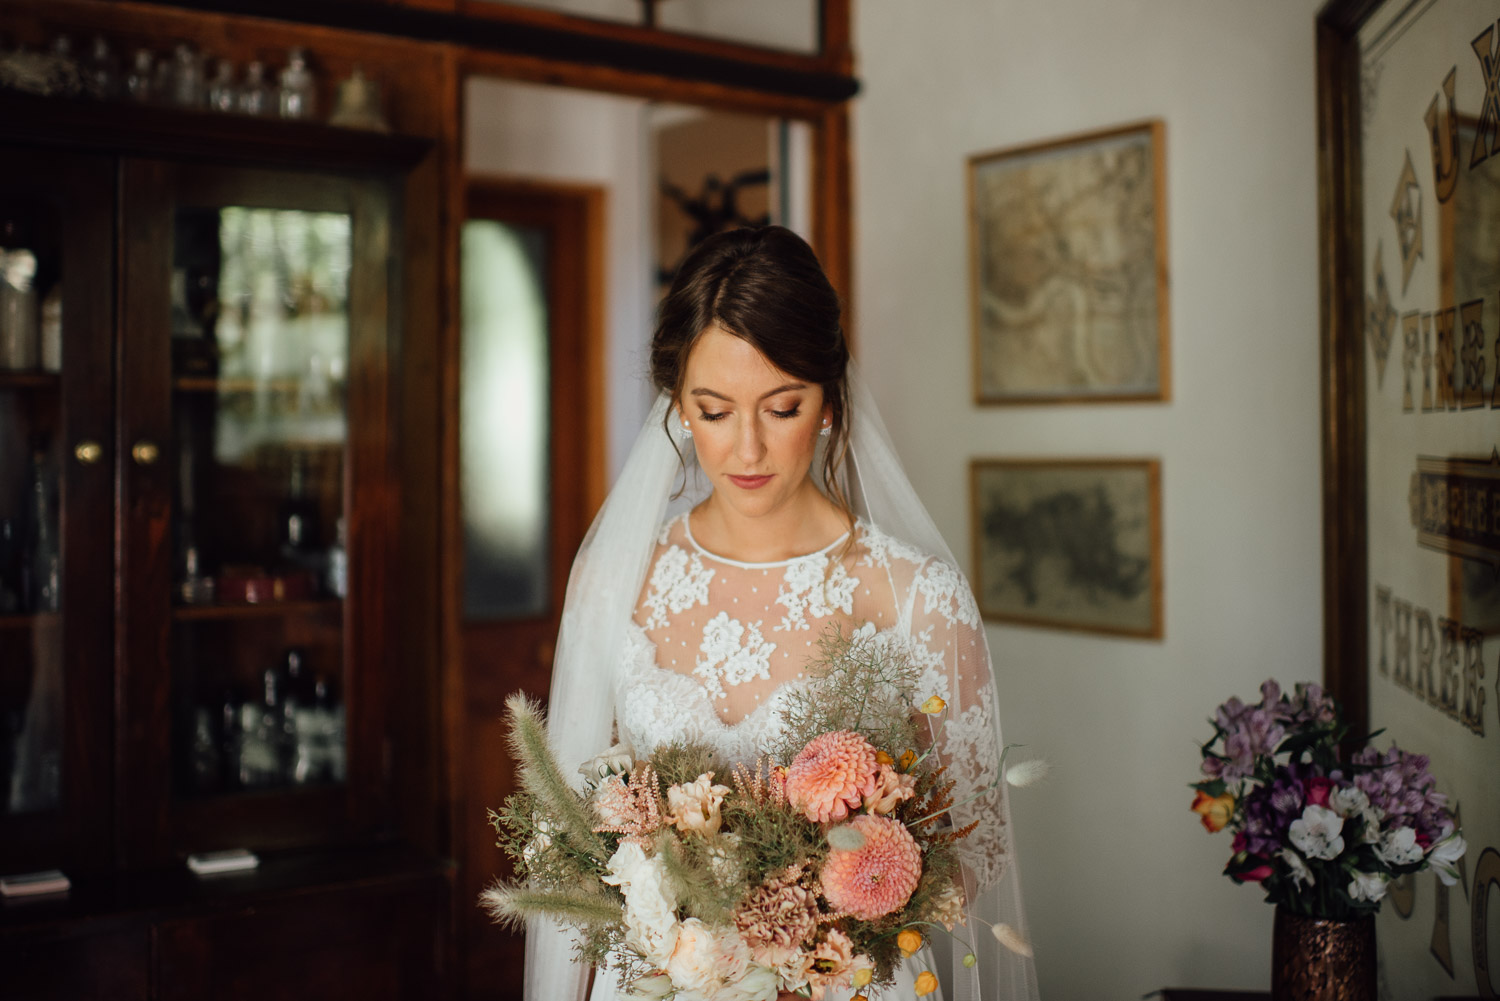 petalon bridal bouquet wilton's music hall wedding by london wedding photographer the shannons photography